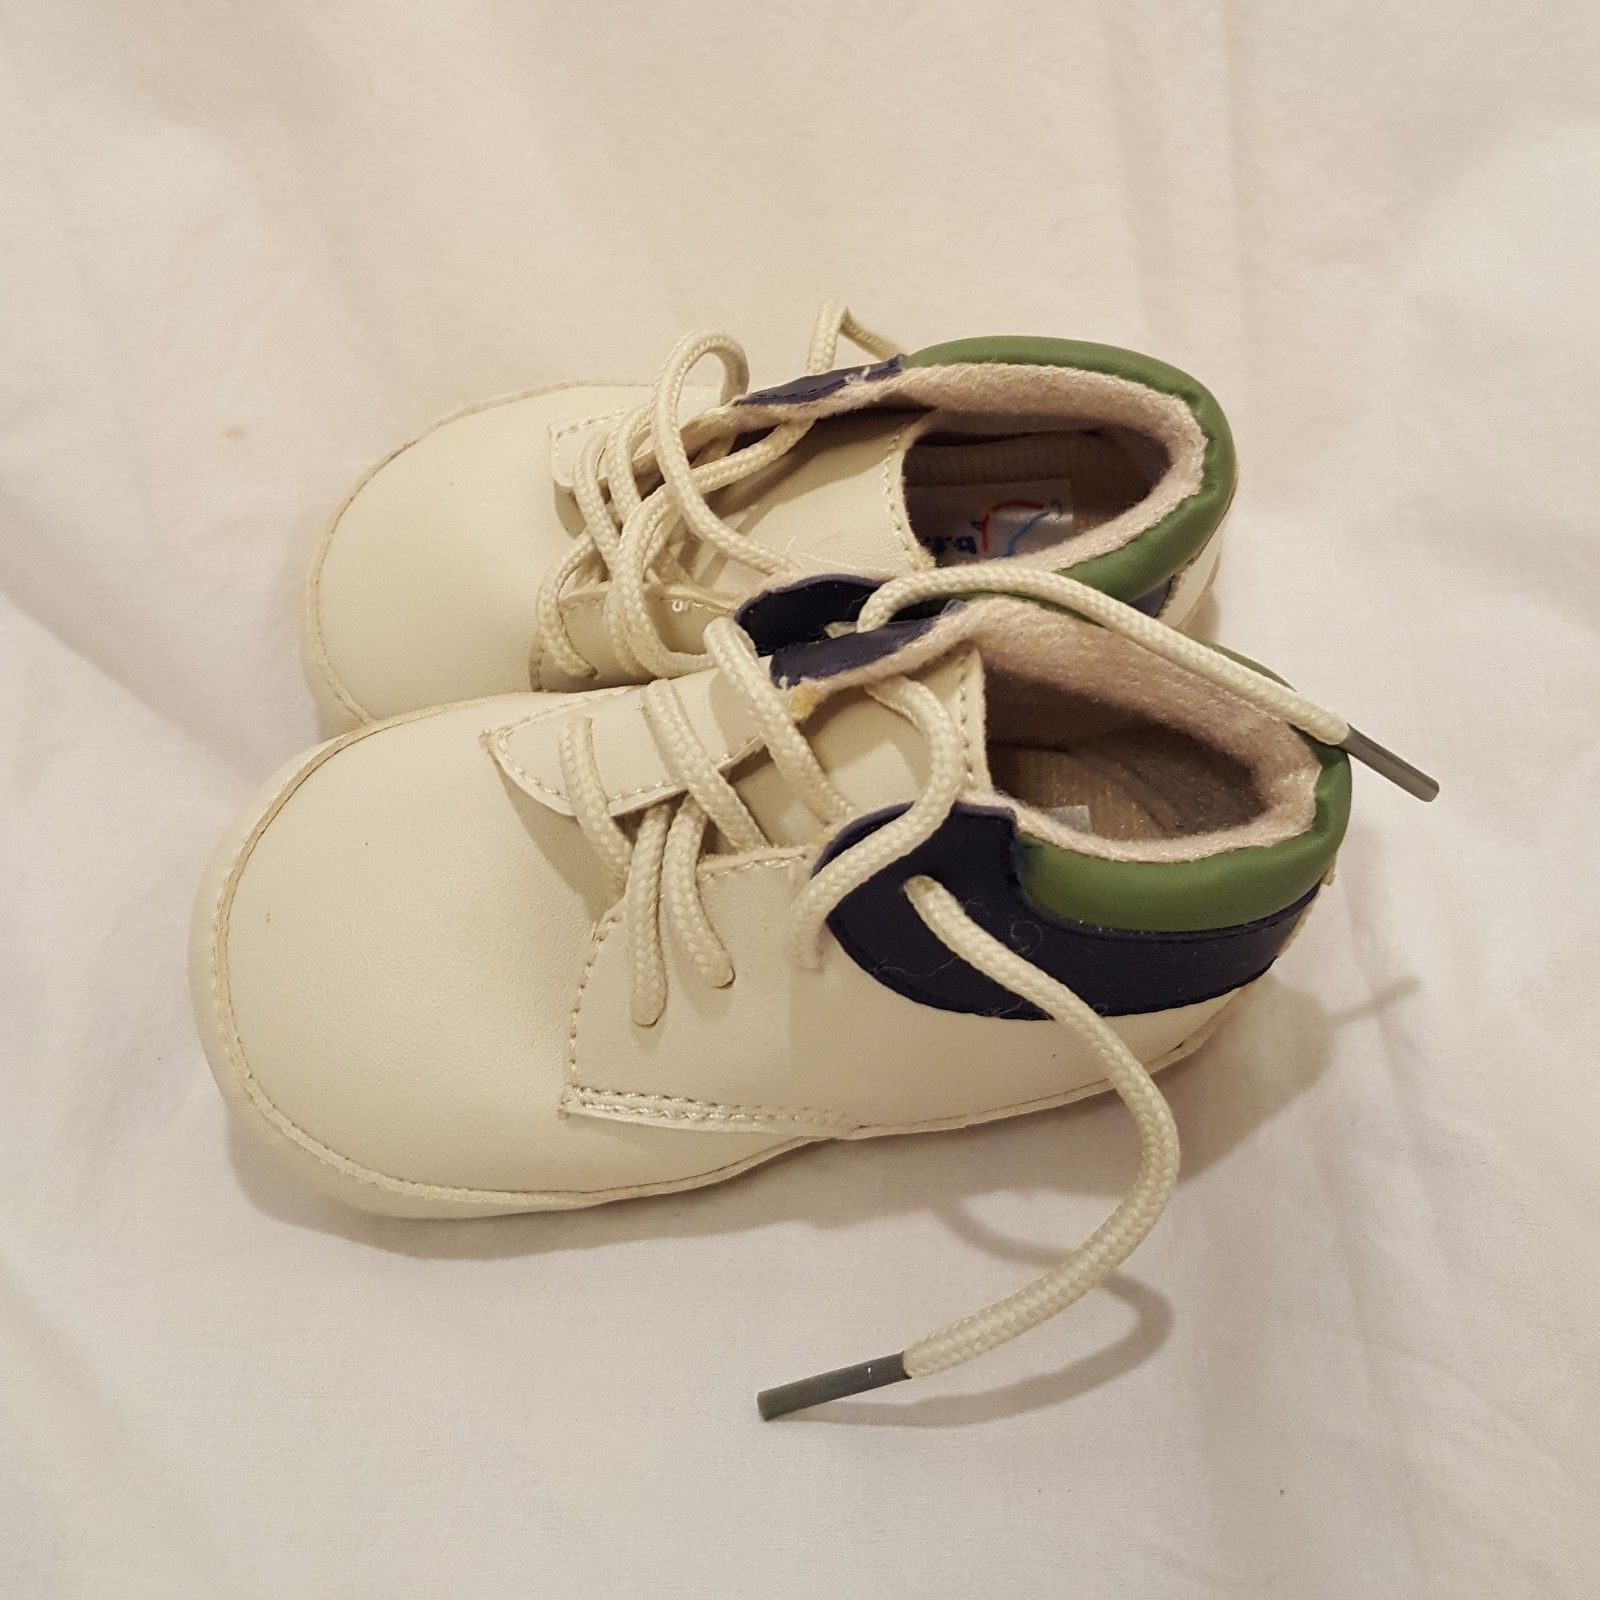 Shoes Soft Sole Toddler Cream Blue Green Size 24 Months 2T Boys BT Kids Lace